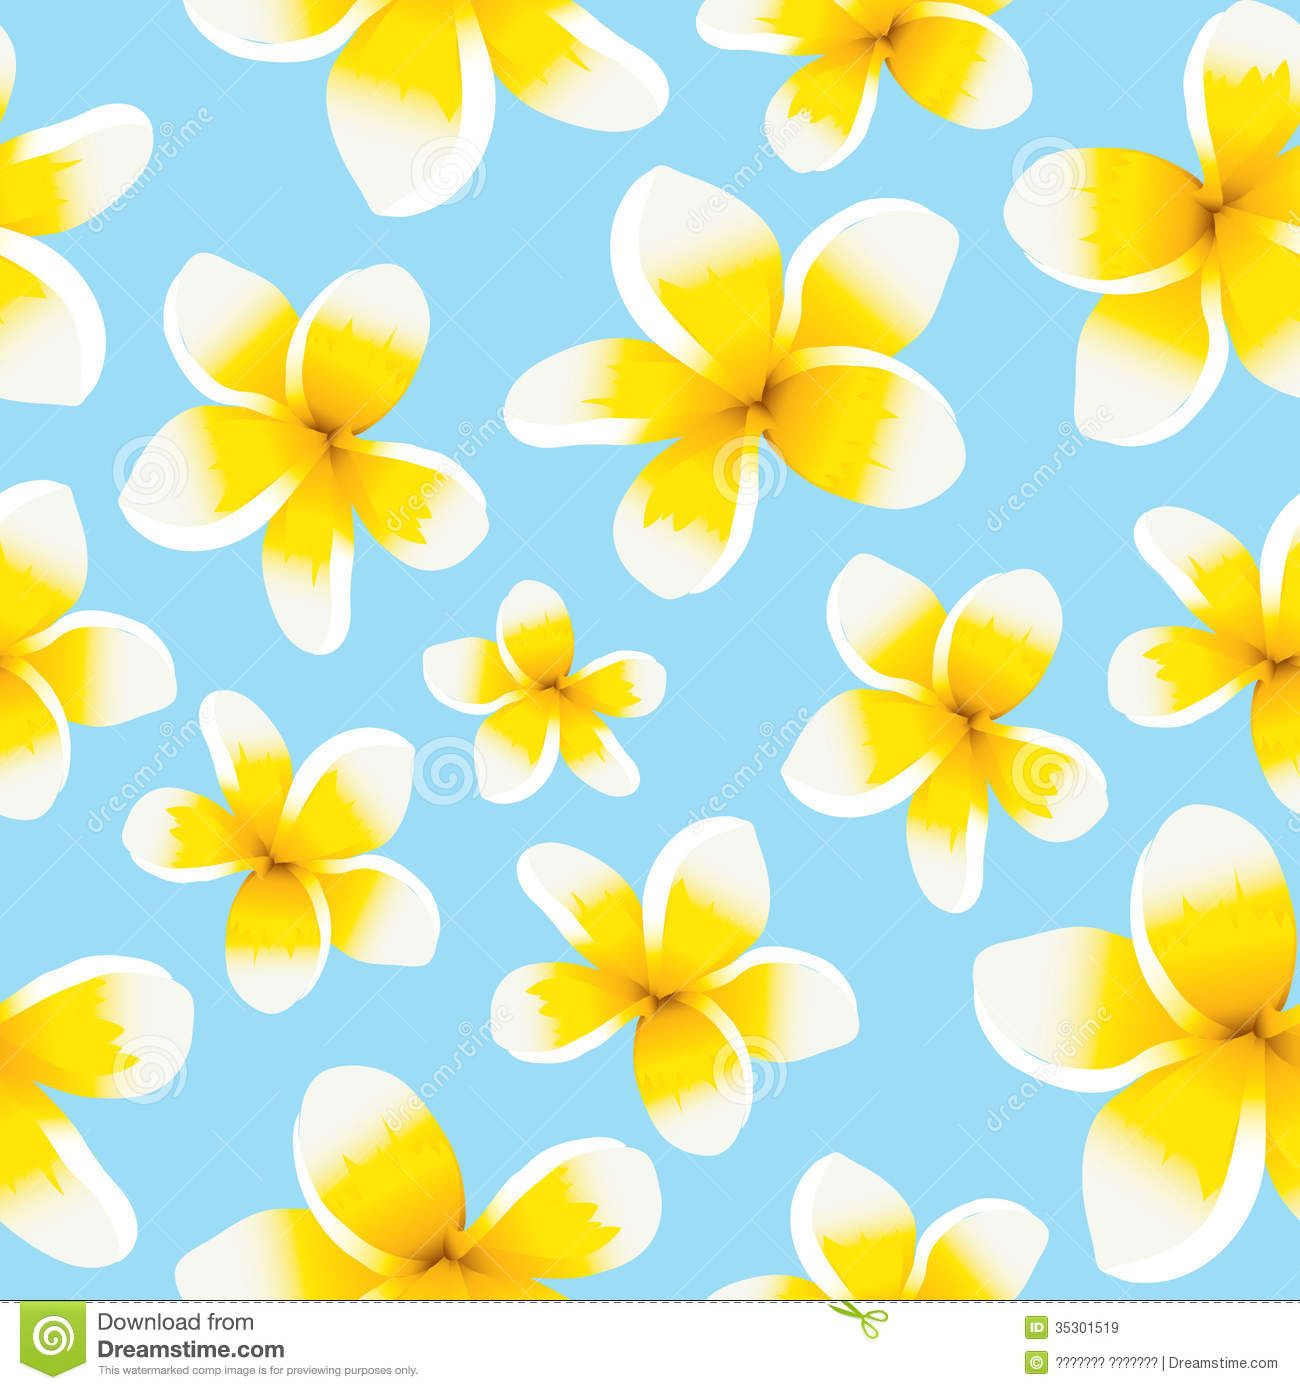 yellow floral patterns Google Search Floral background